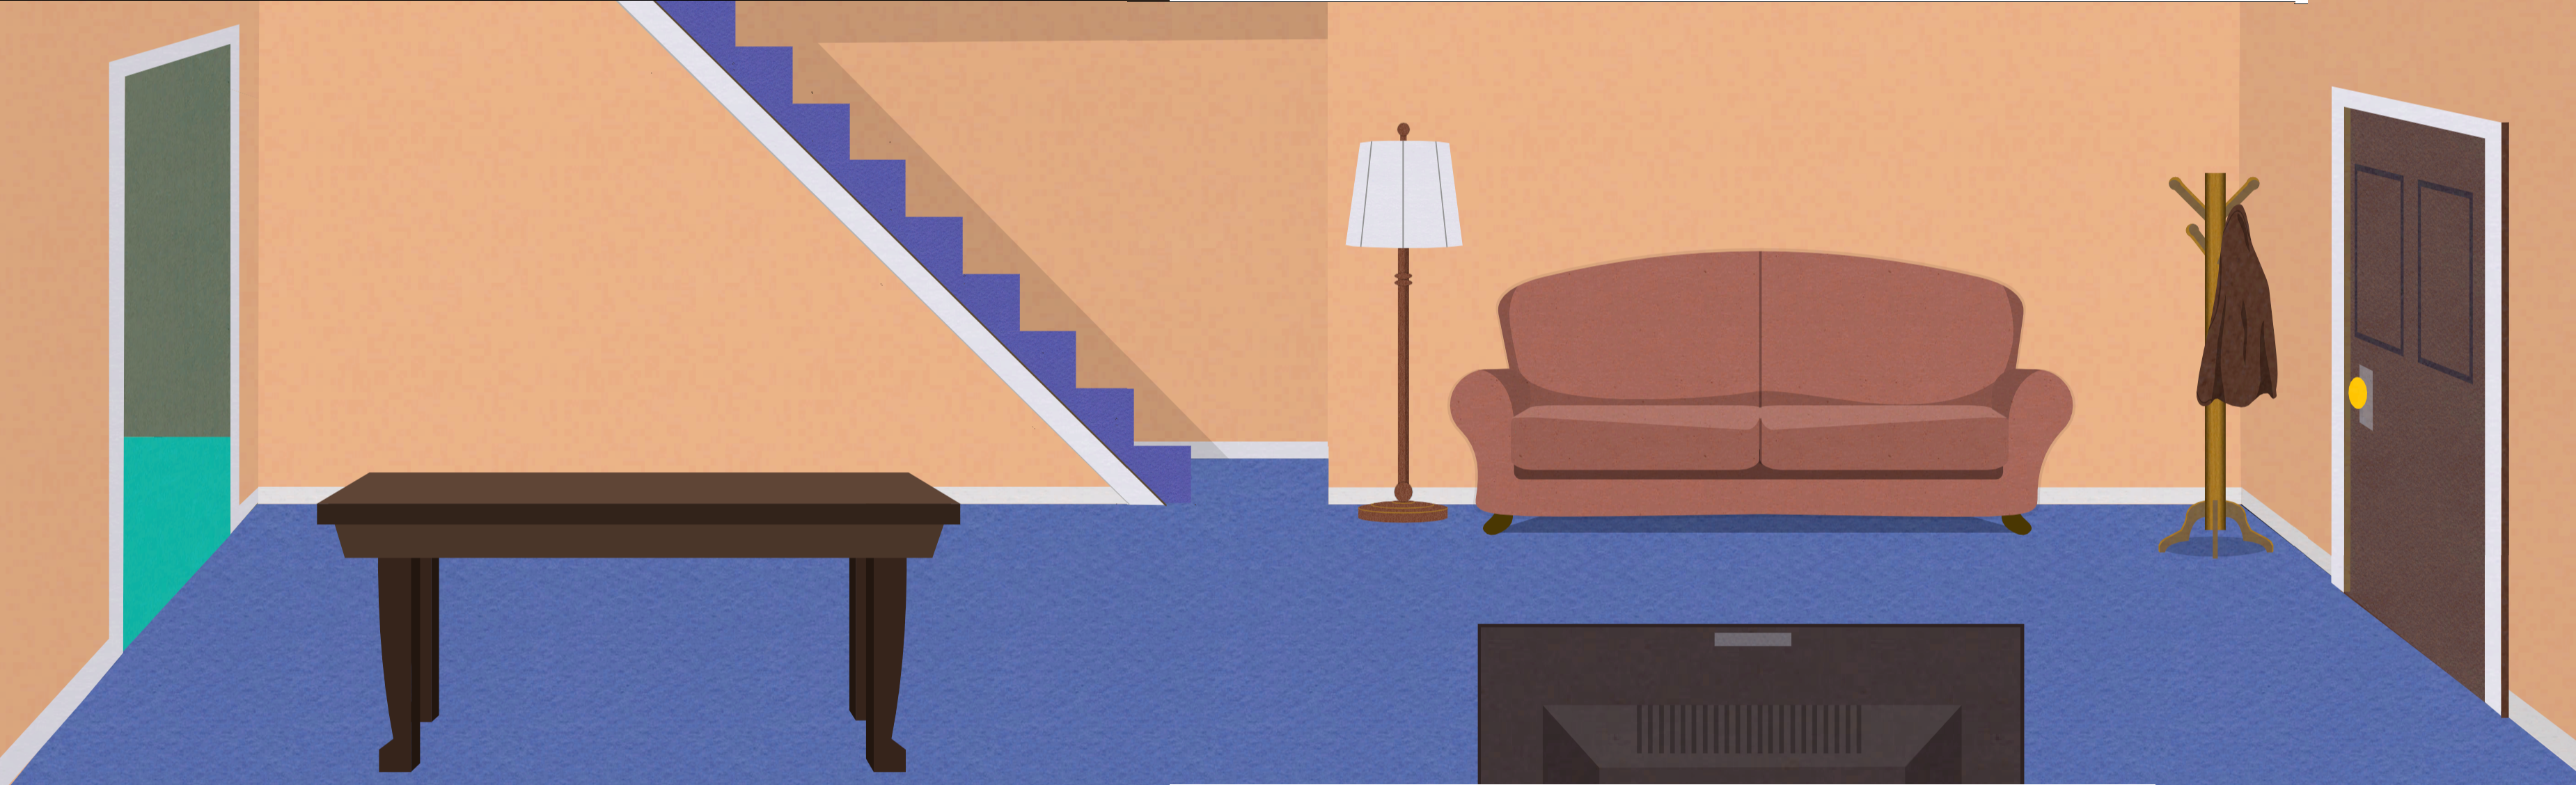 South Park Clyde S Living Room Unused Sot Bg By Roamingberry On Deviantart